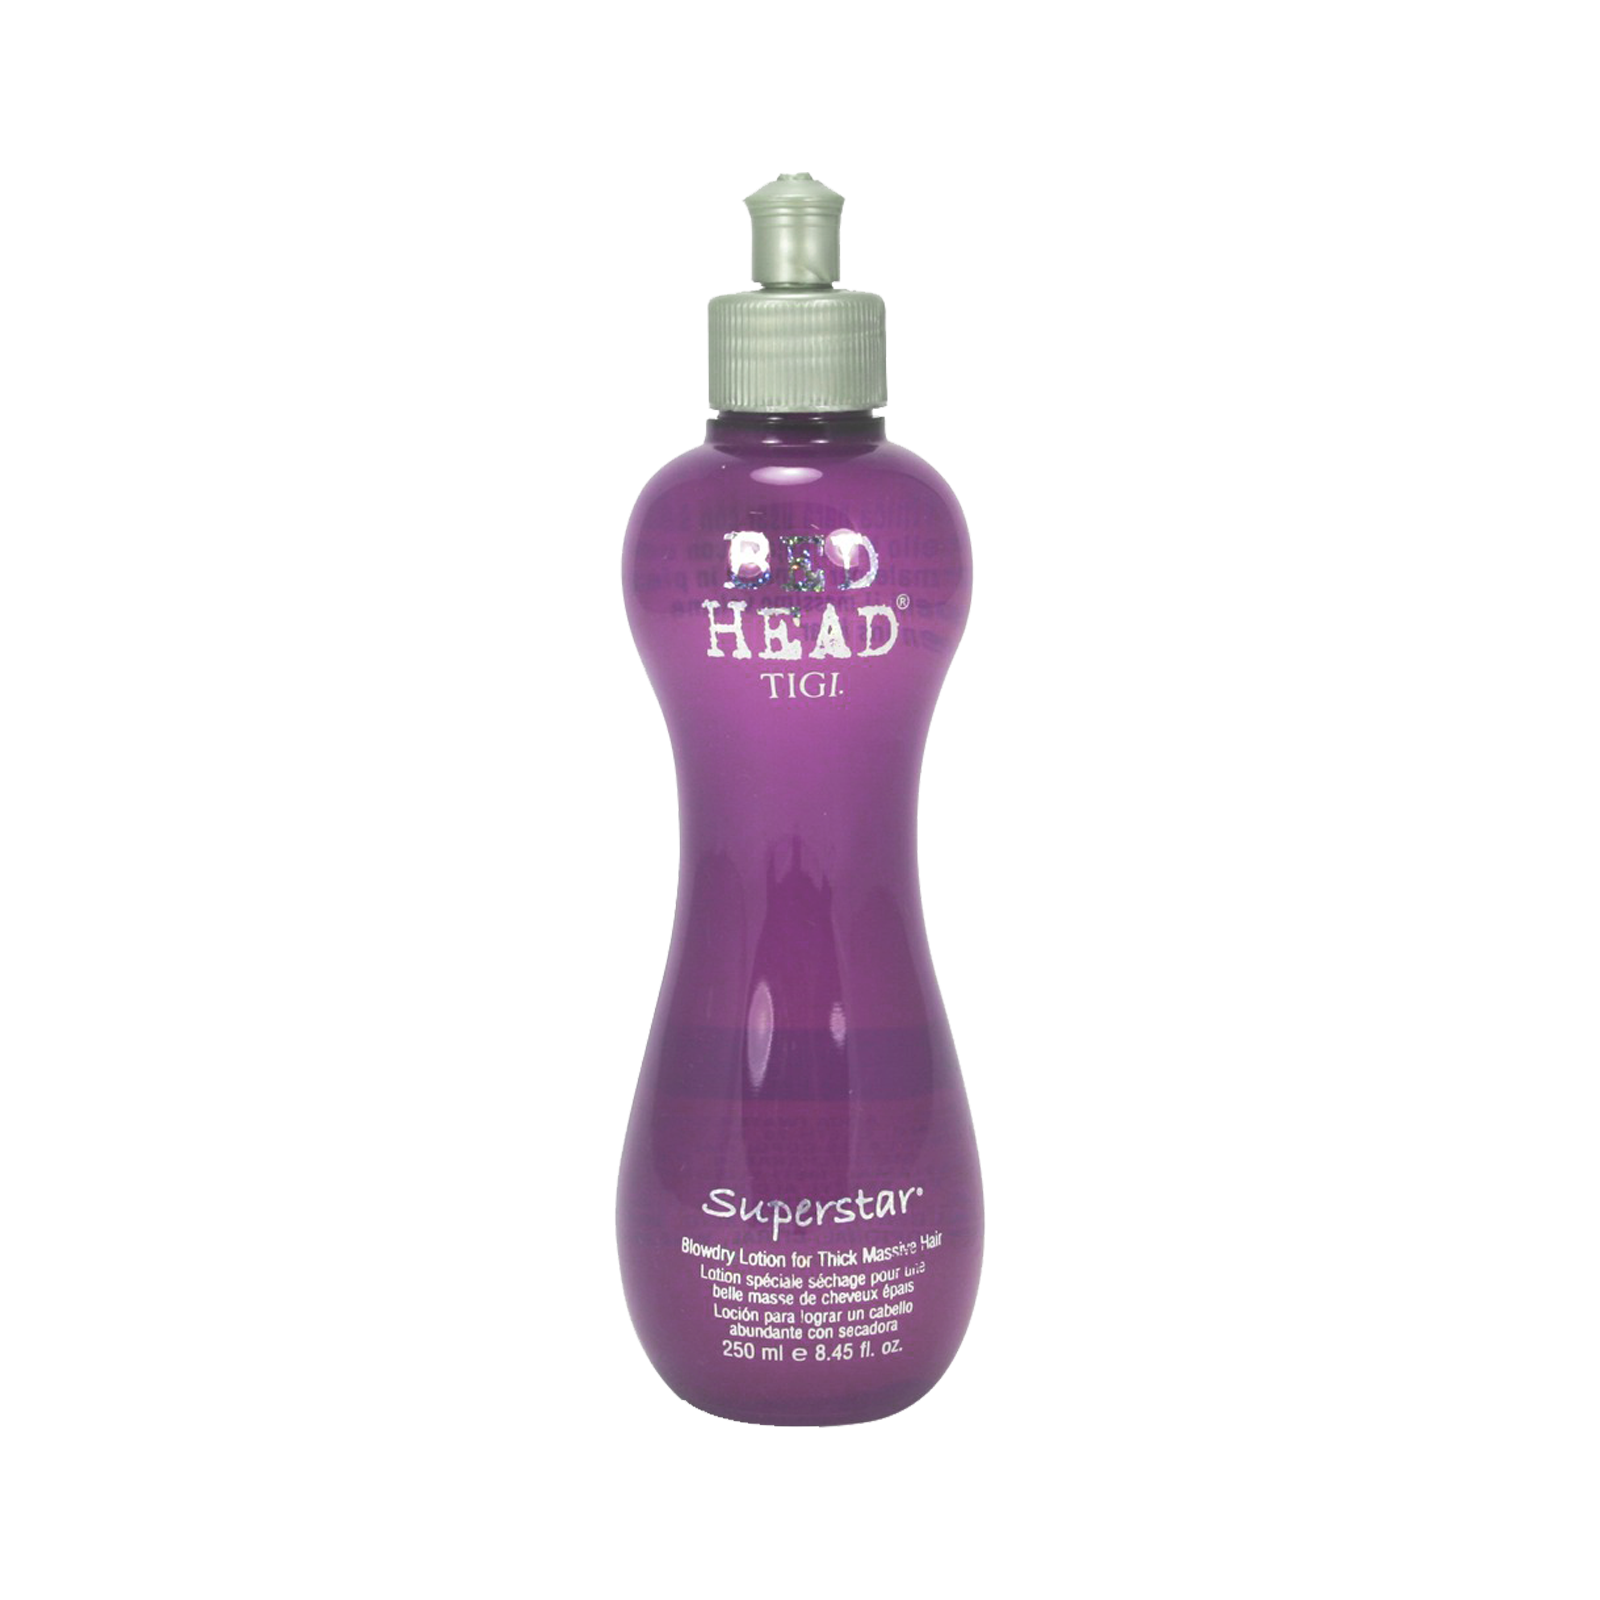 Bed Head Superstar Thermal Blow-Dry Hair Lotion